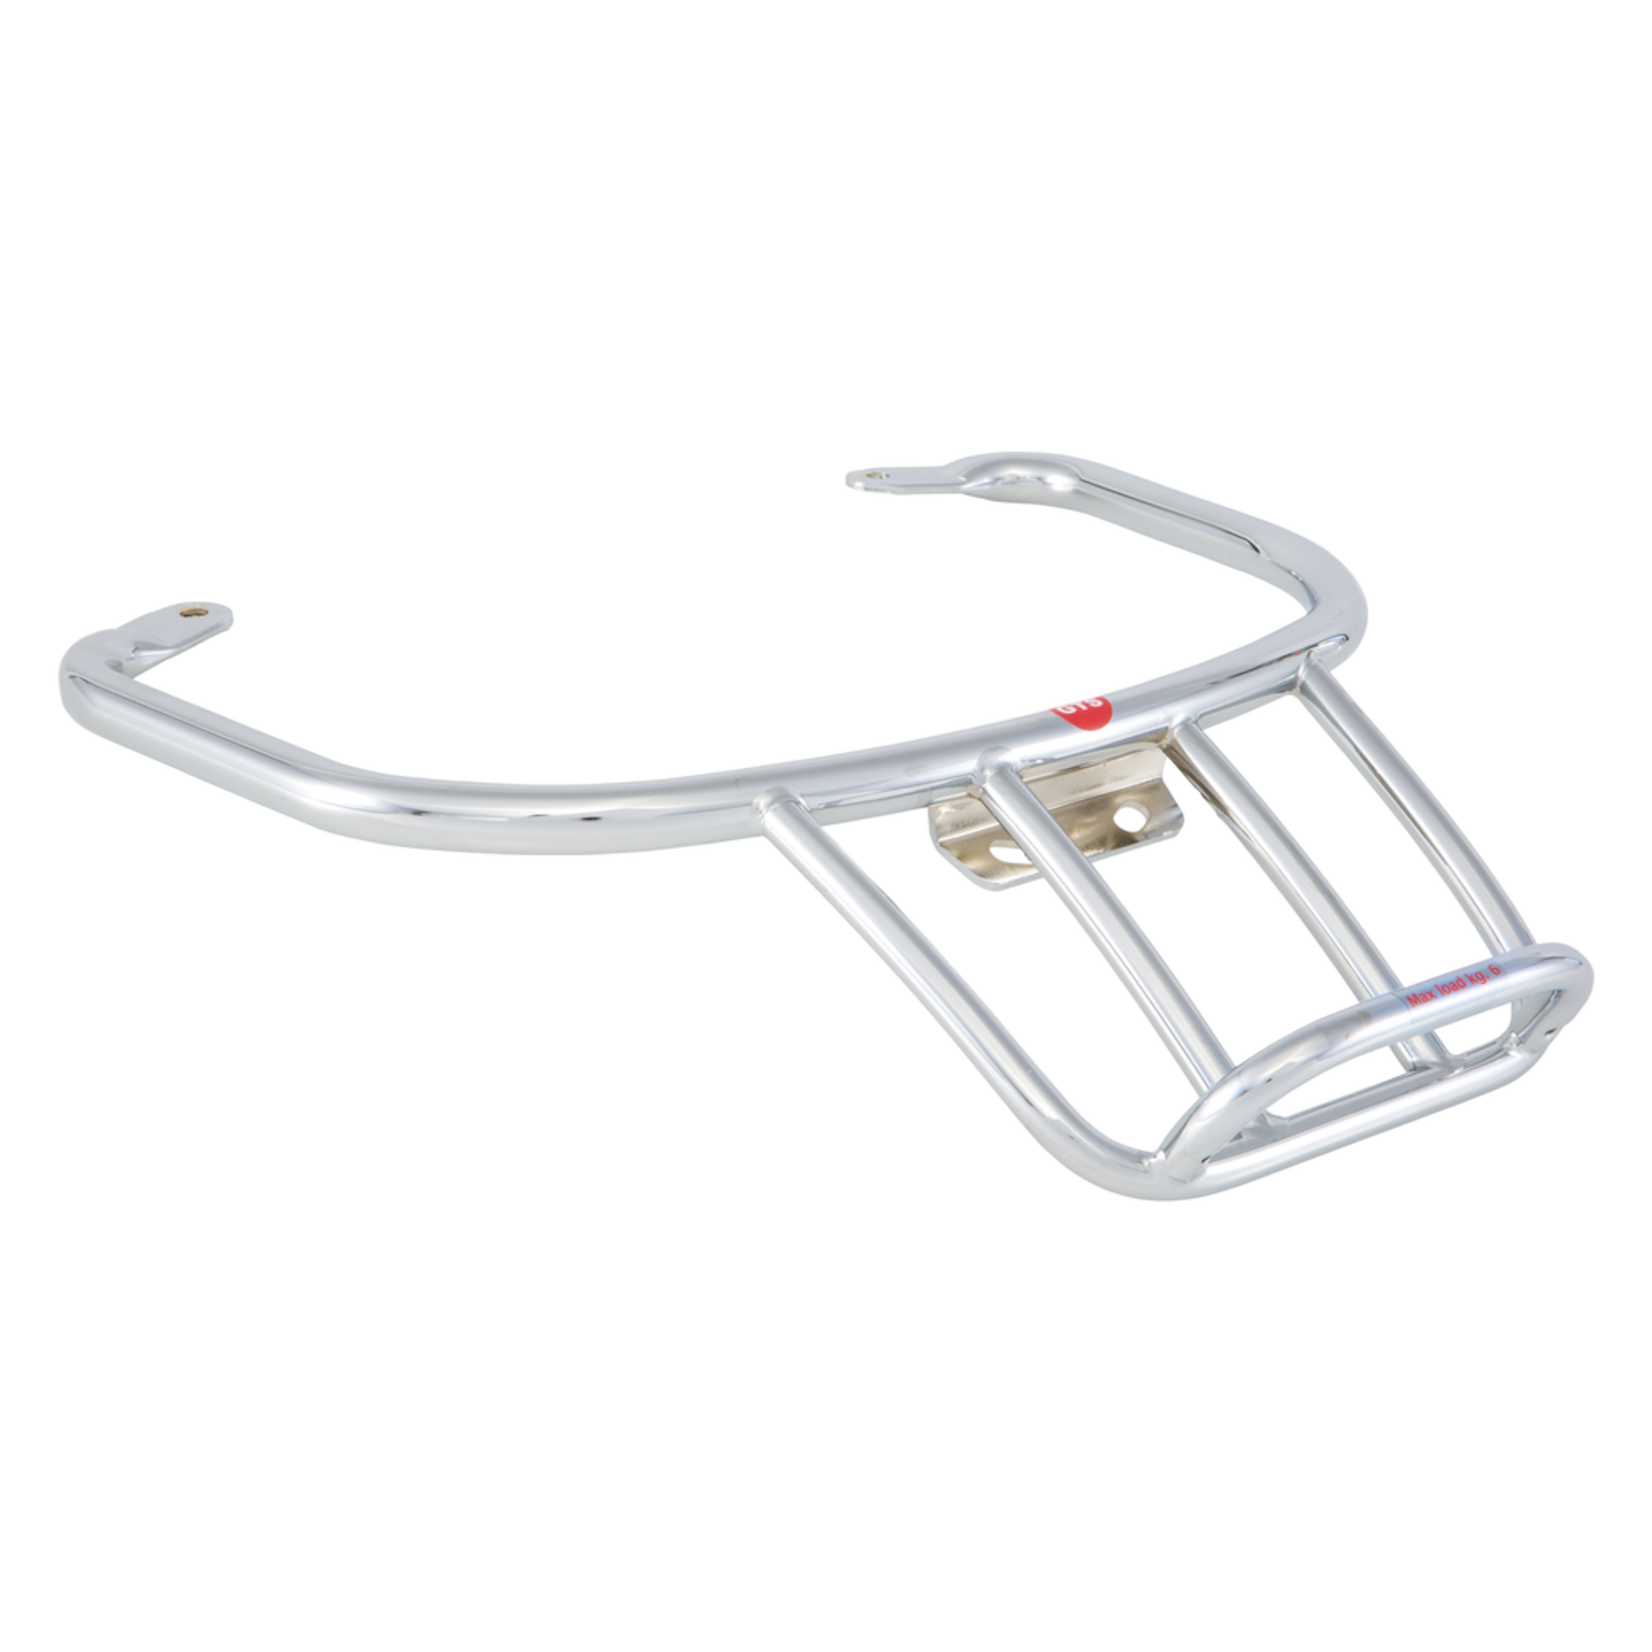 Accessories Rack, GTS 70's Grab Handle Luggage Rack Chrome